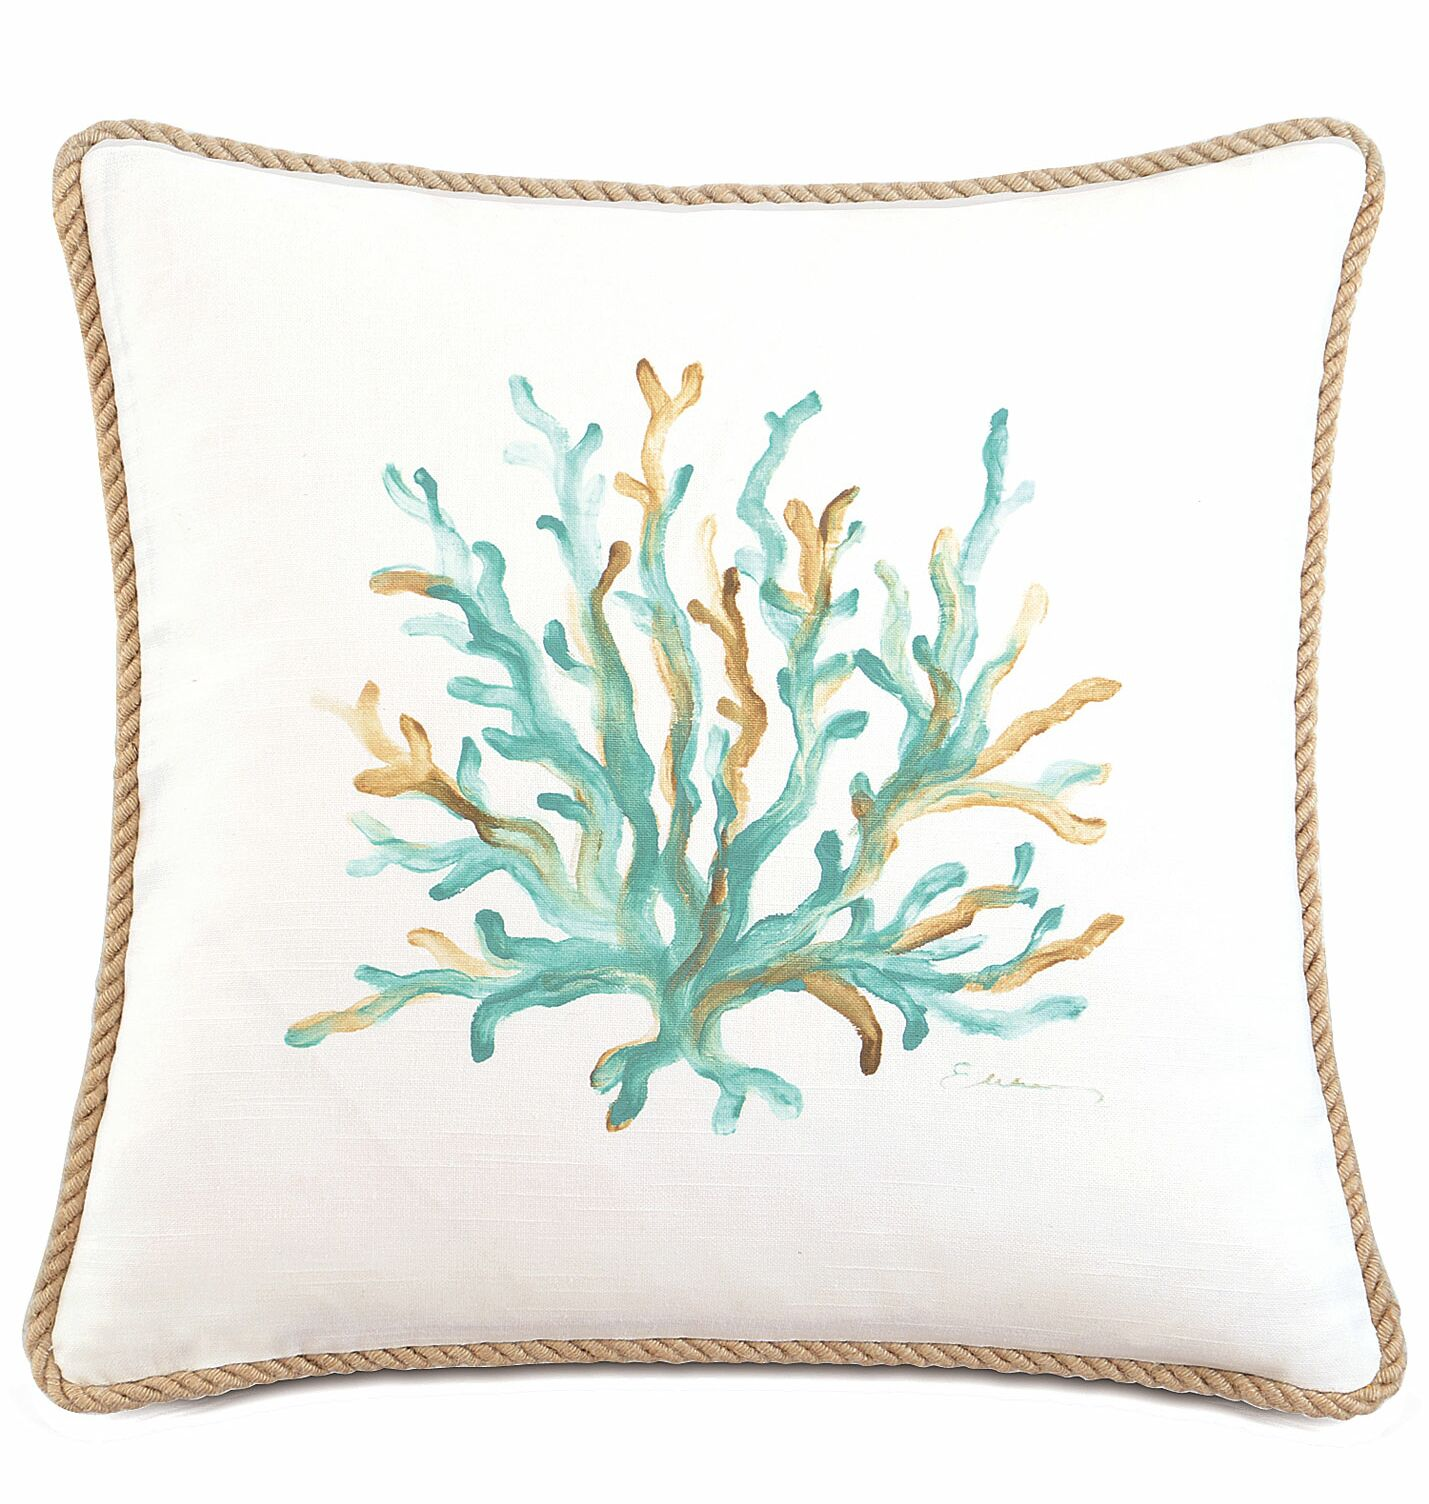 Sumba Hand-Painted Coral Cotton Throw Pillow